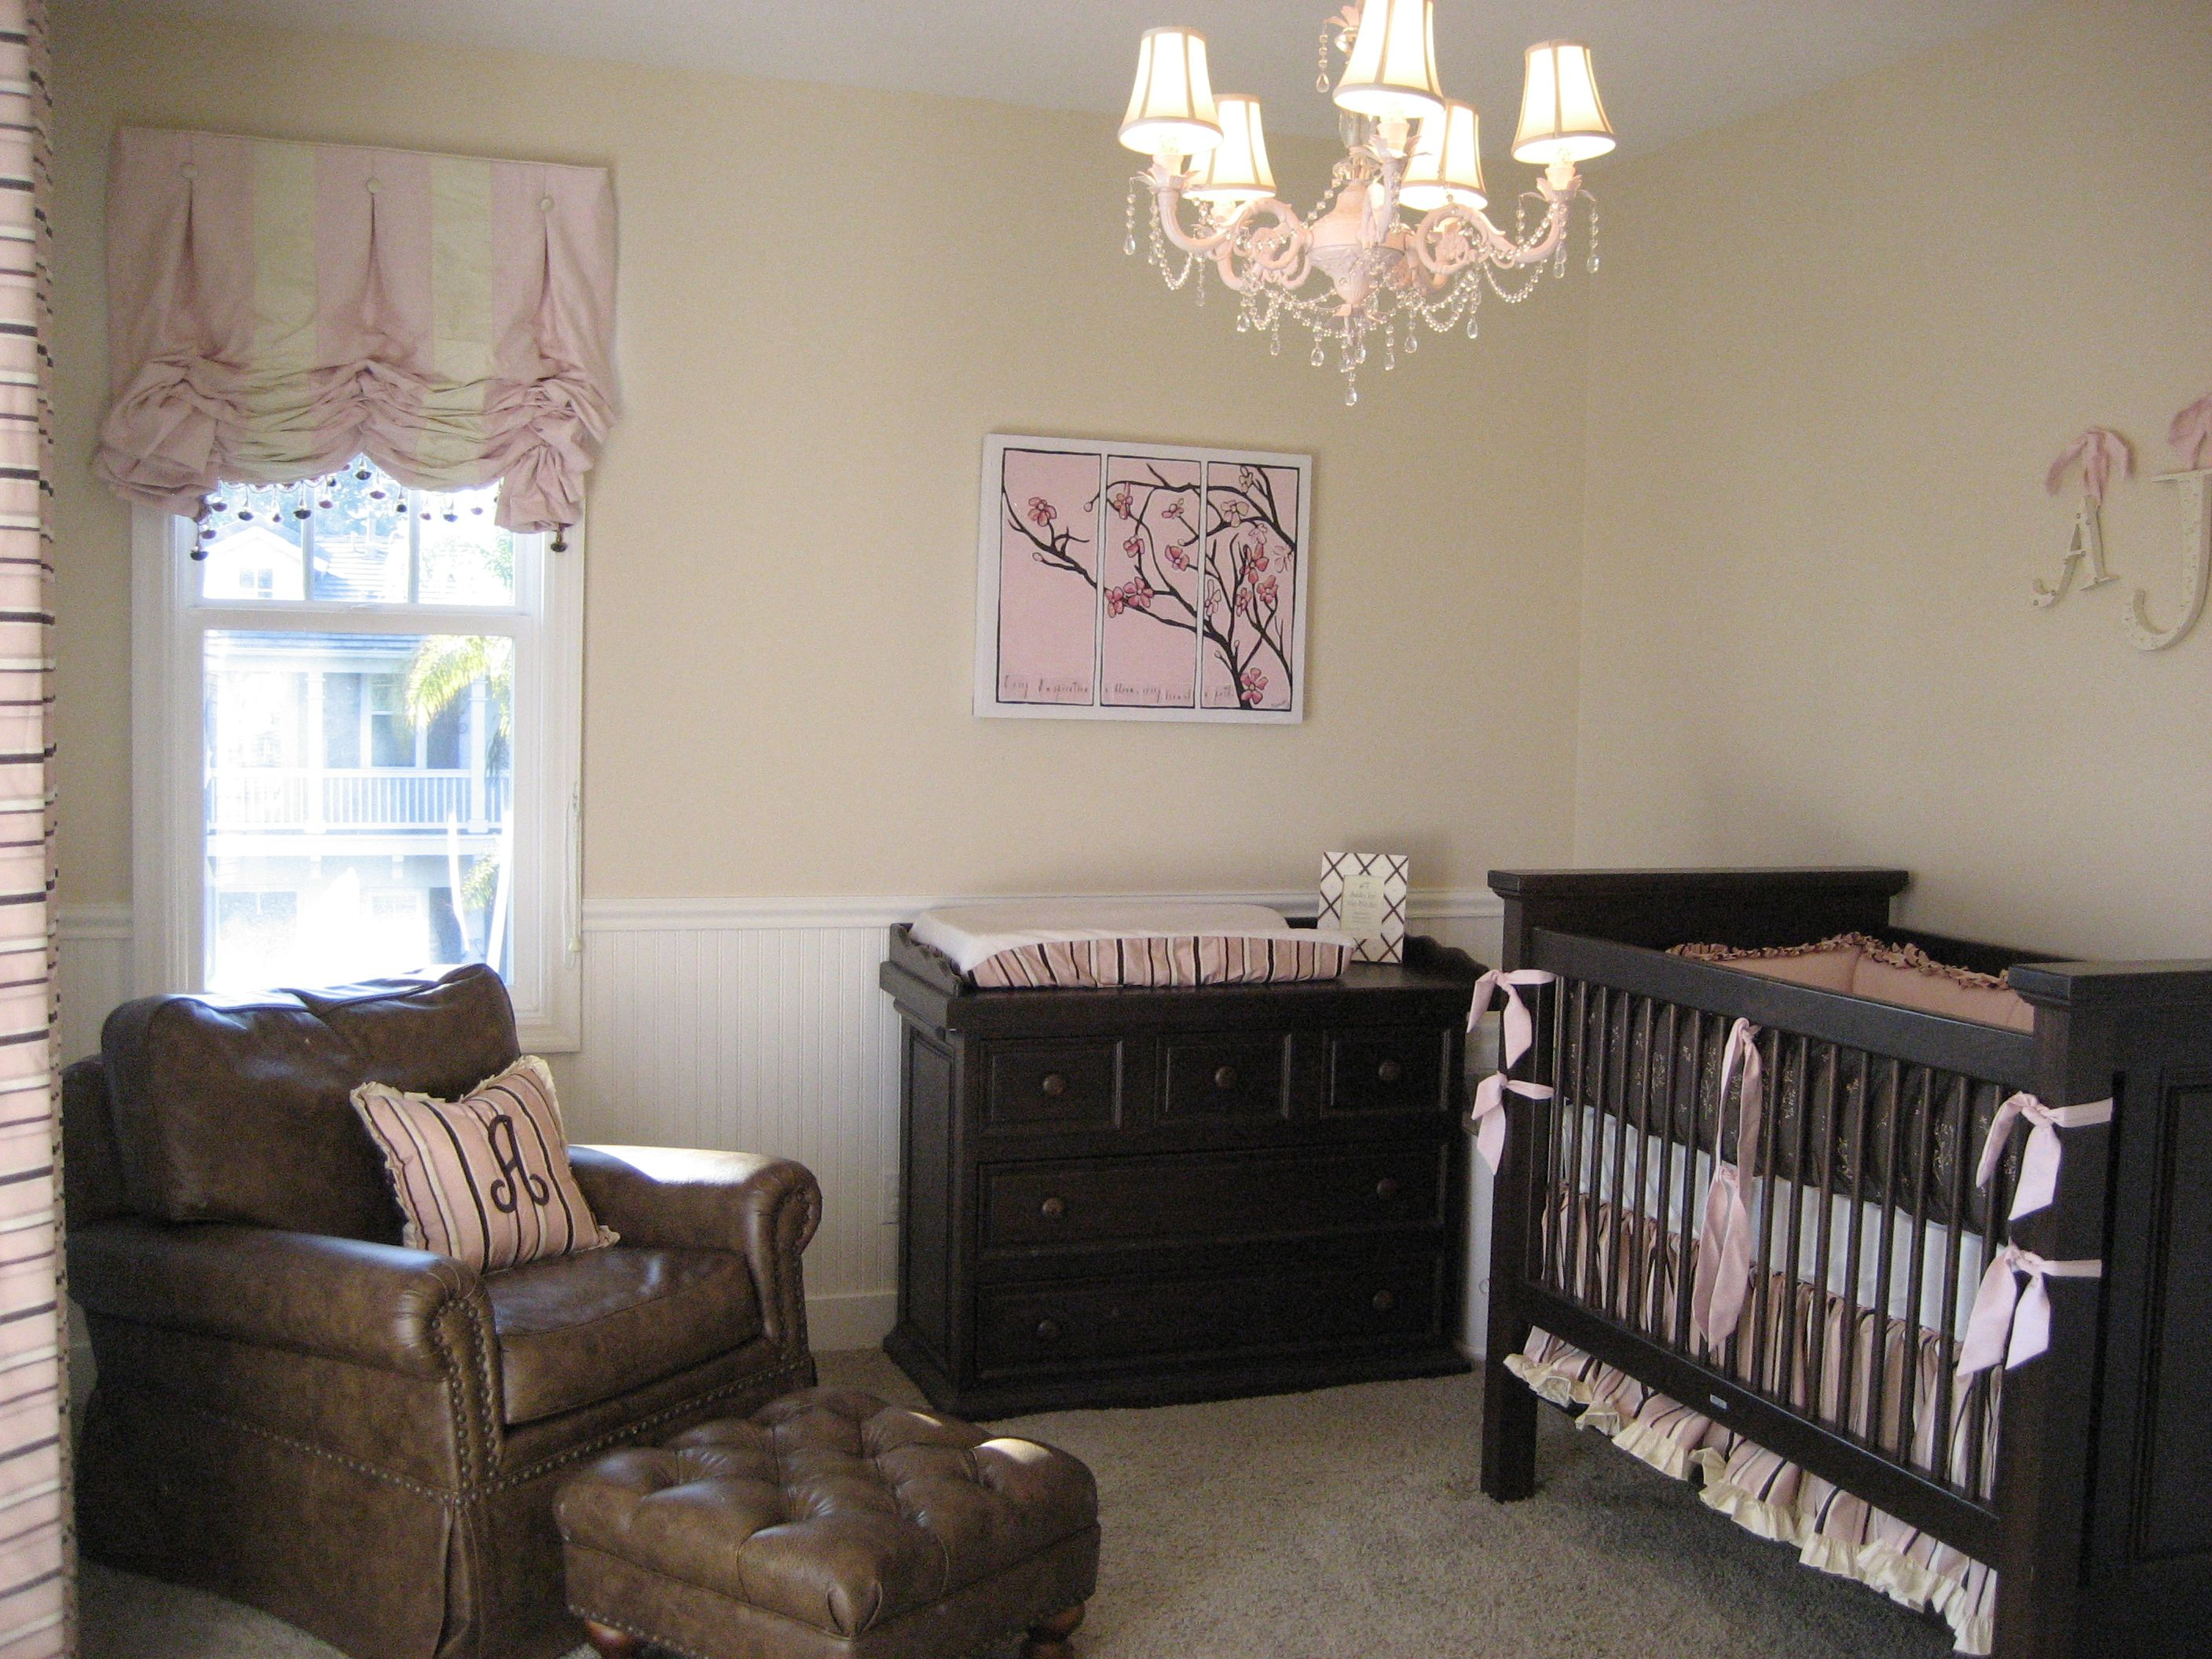 Rural Chic for a baby girl, dark furniture.   Home decorating ...